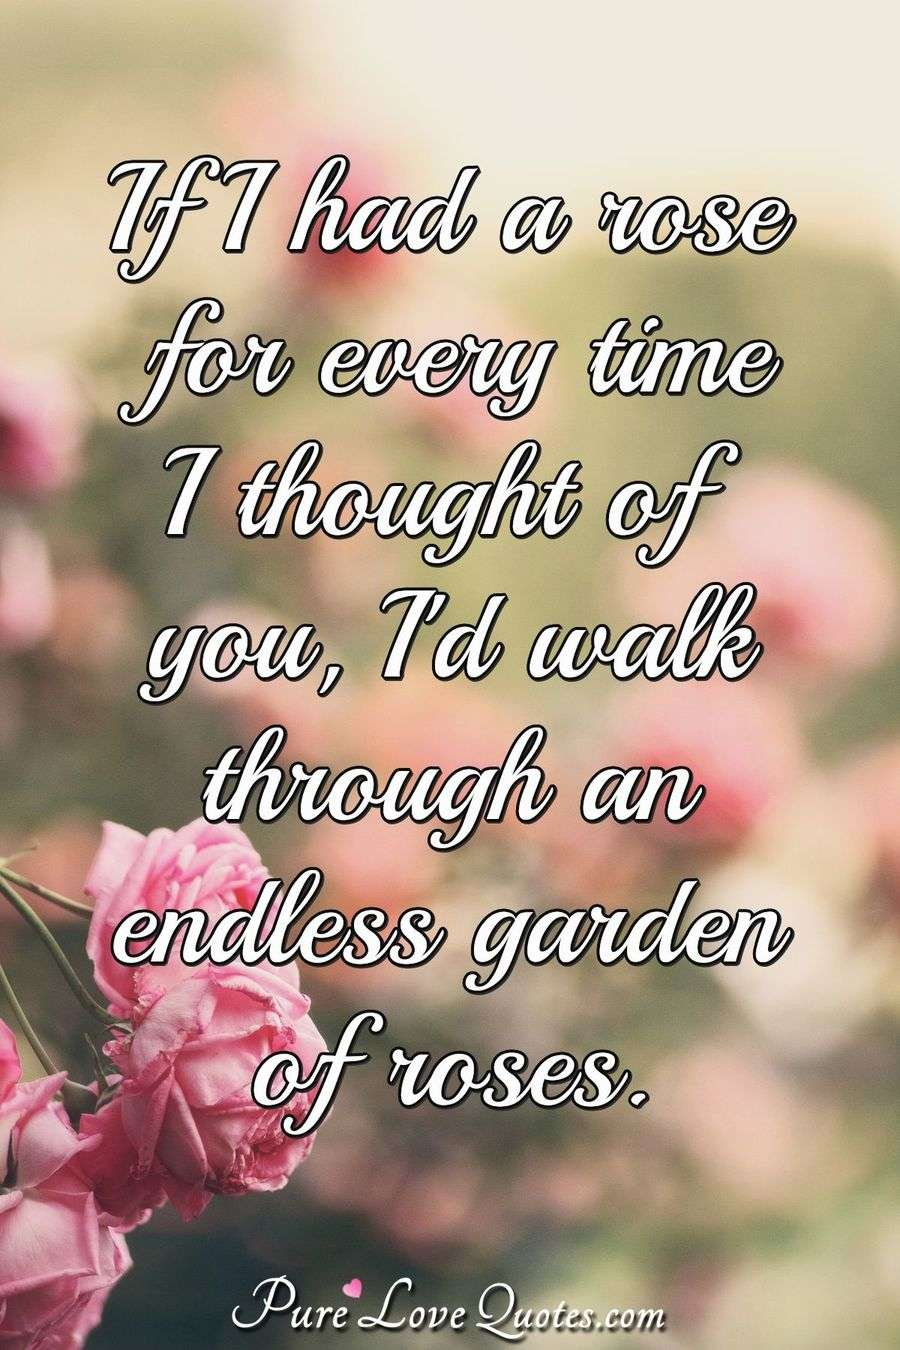 If I had a rose for every time I thought of you, I'd walk through an endless garden of roses. - Anonymous